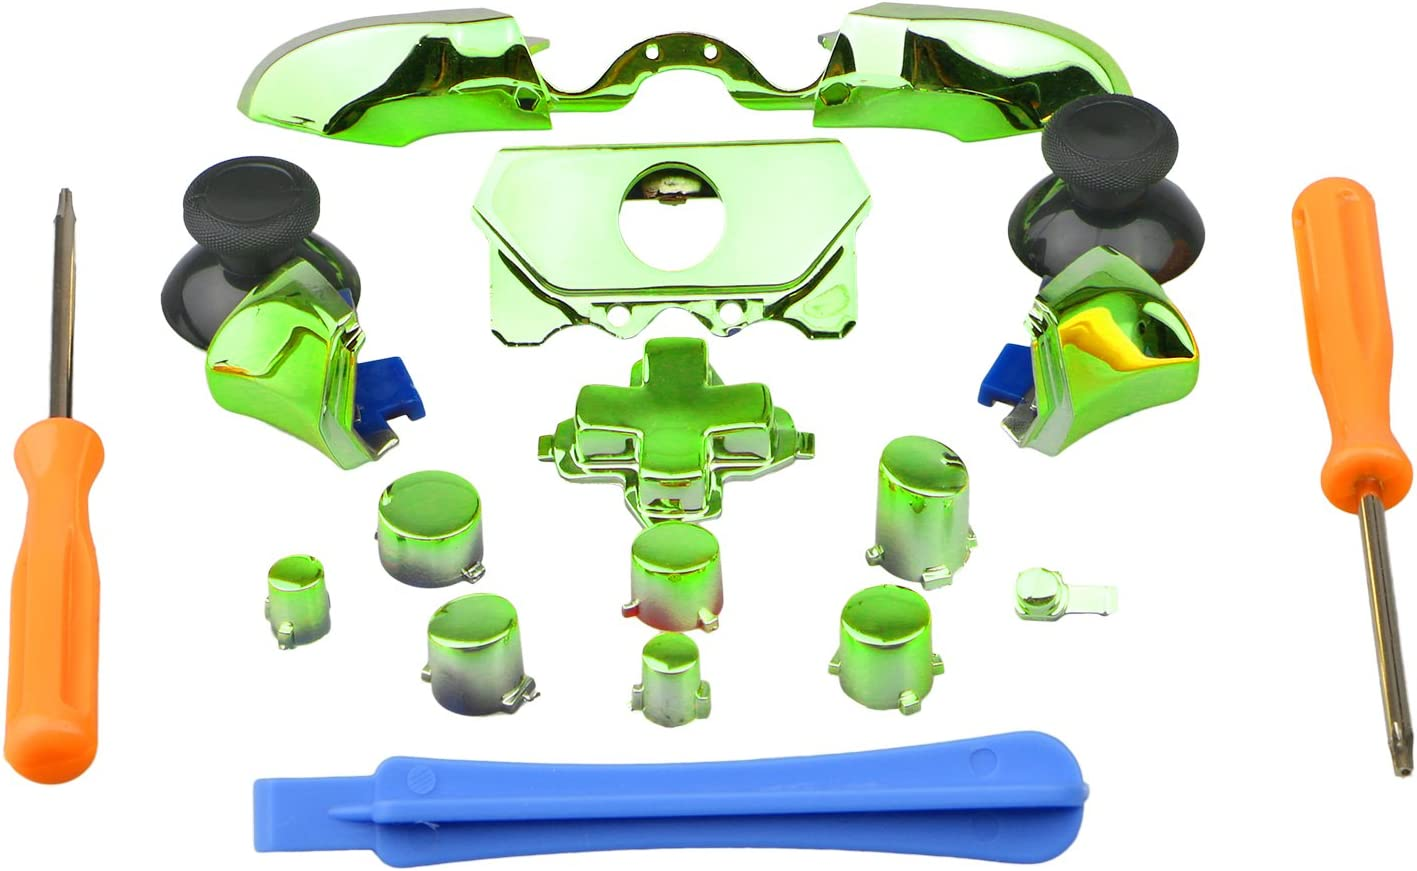 Purpplex 1 Set Customized Replacement Bumper/Trigger Button for Xbox One Elite Controller - Chrome Green